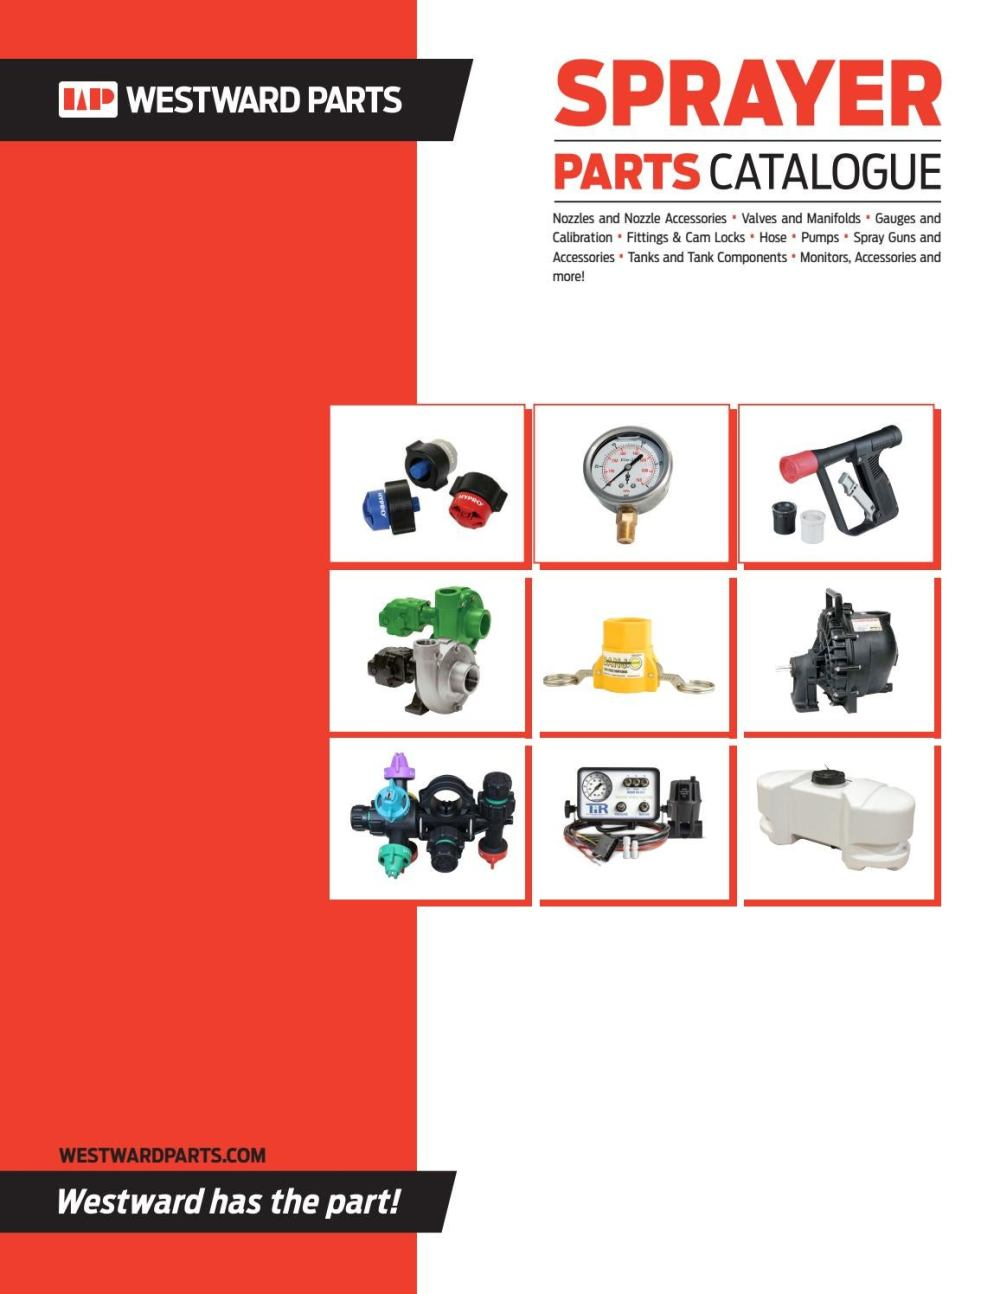 medium resolution of section 1 nozzles and nozzle accessories hd westward parts sprayer parts catalogue by westwardparts issuu